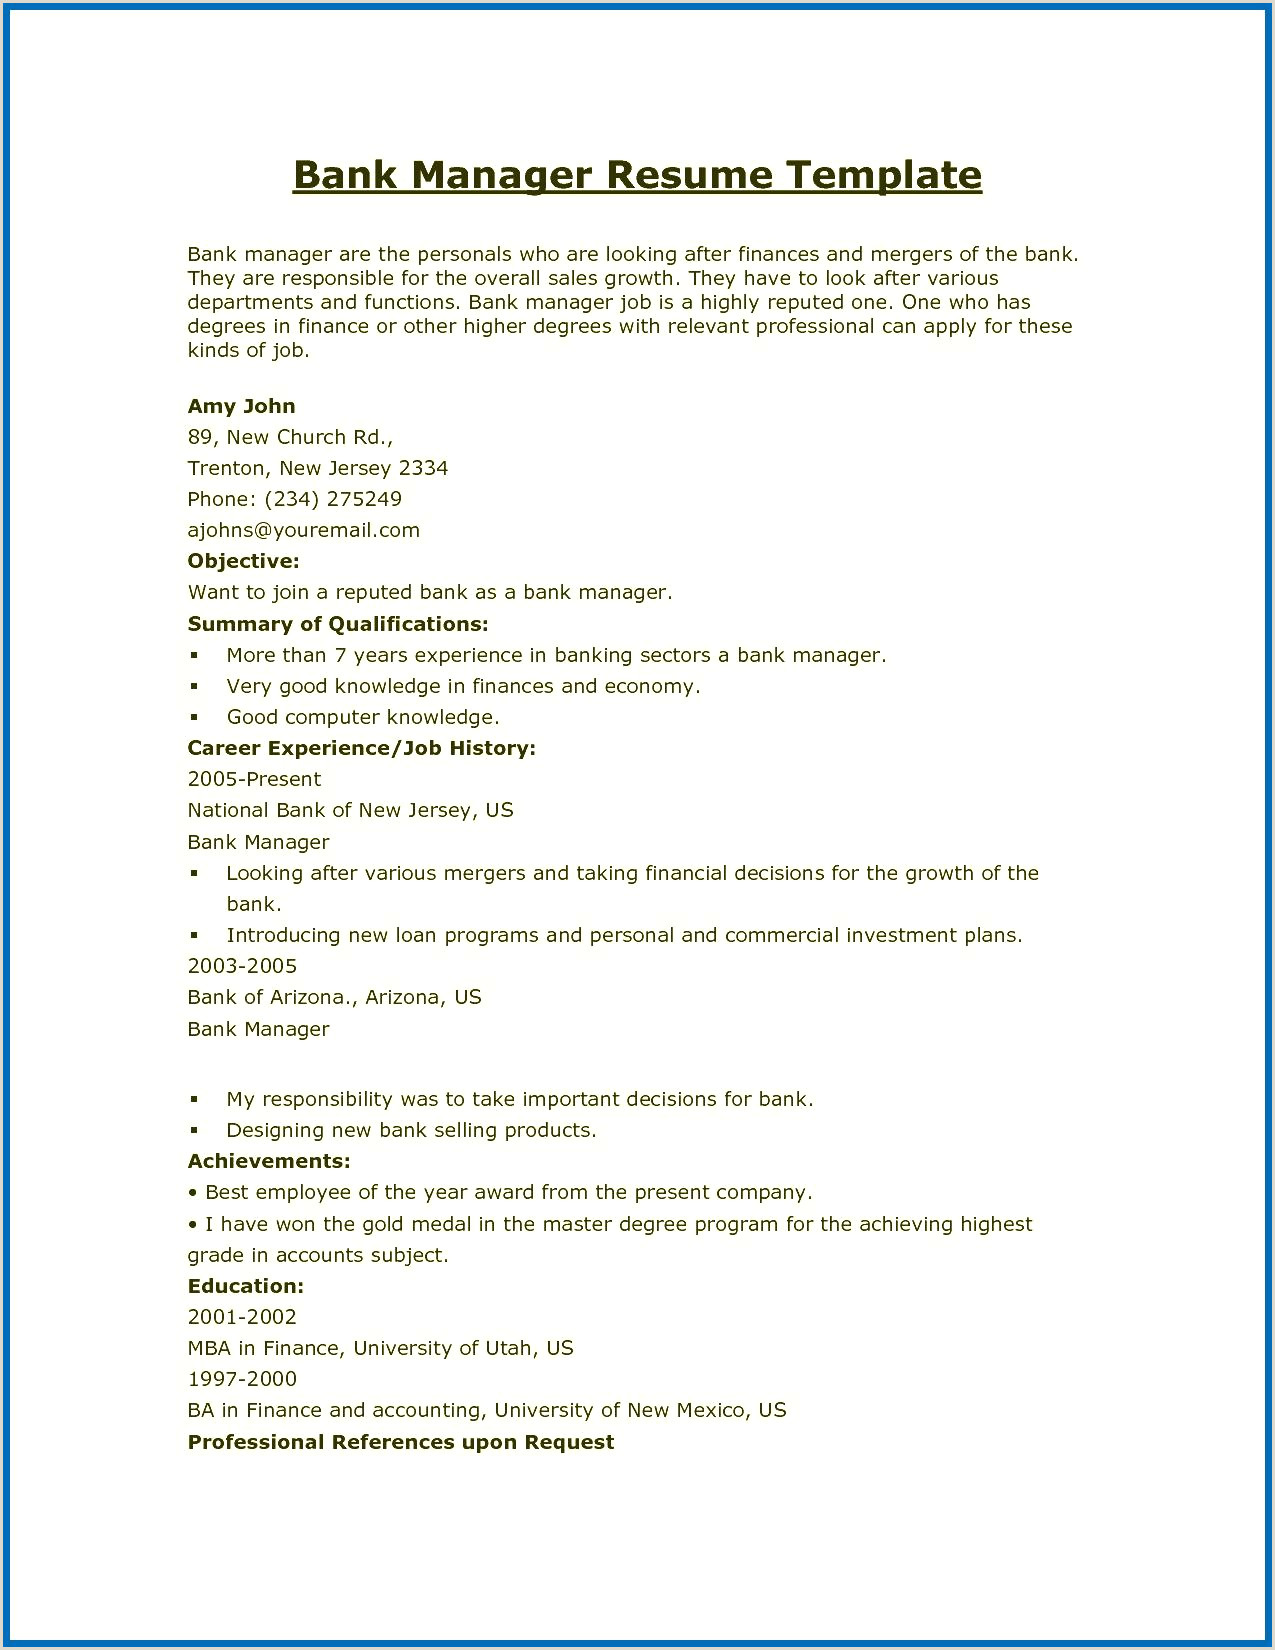 Fresher Cv Format For It Professional Resume Format For Bank Jobs Curriculum Vitae Banking Pdf